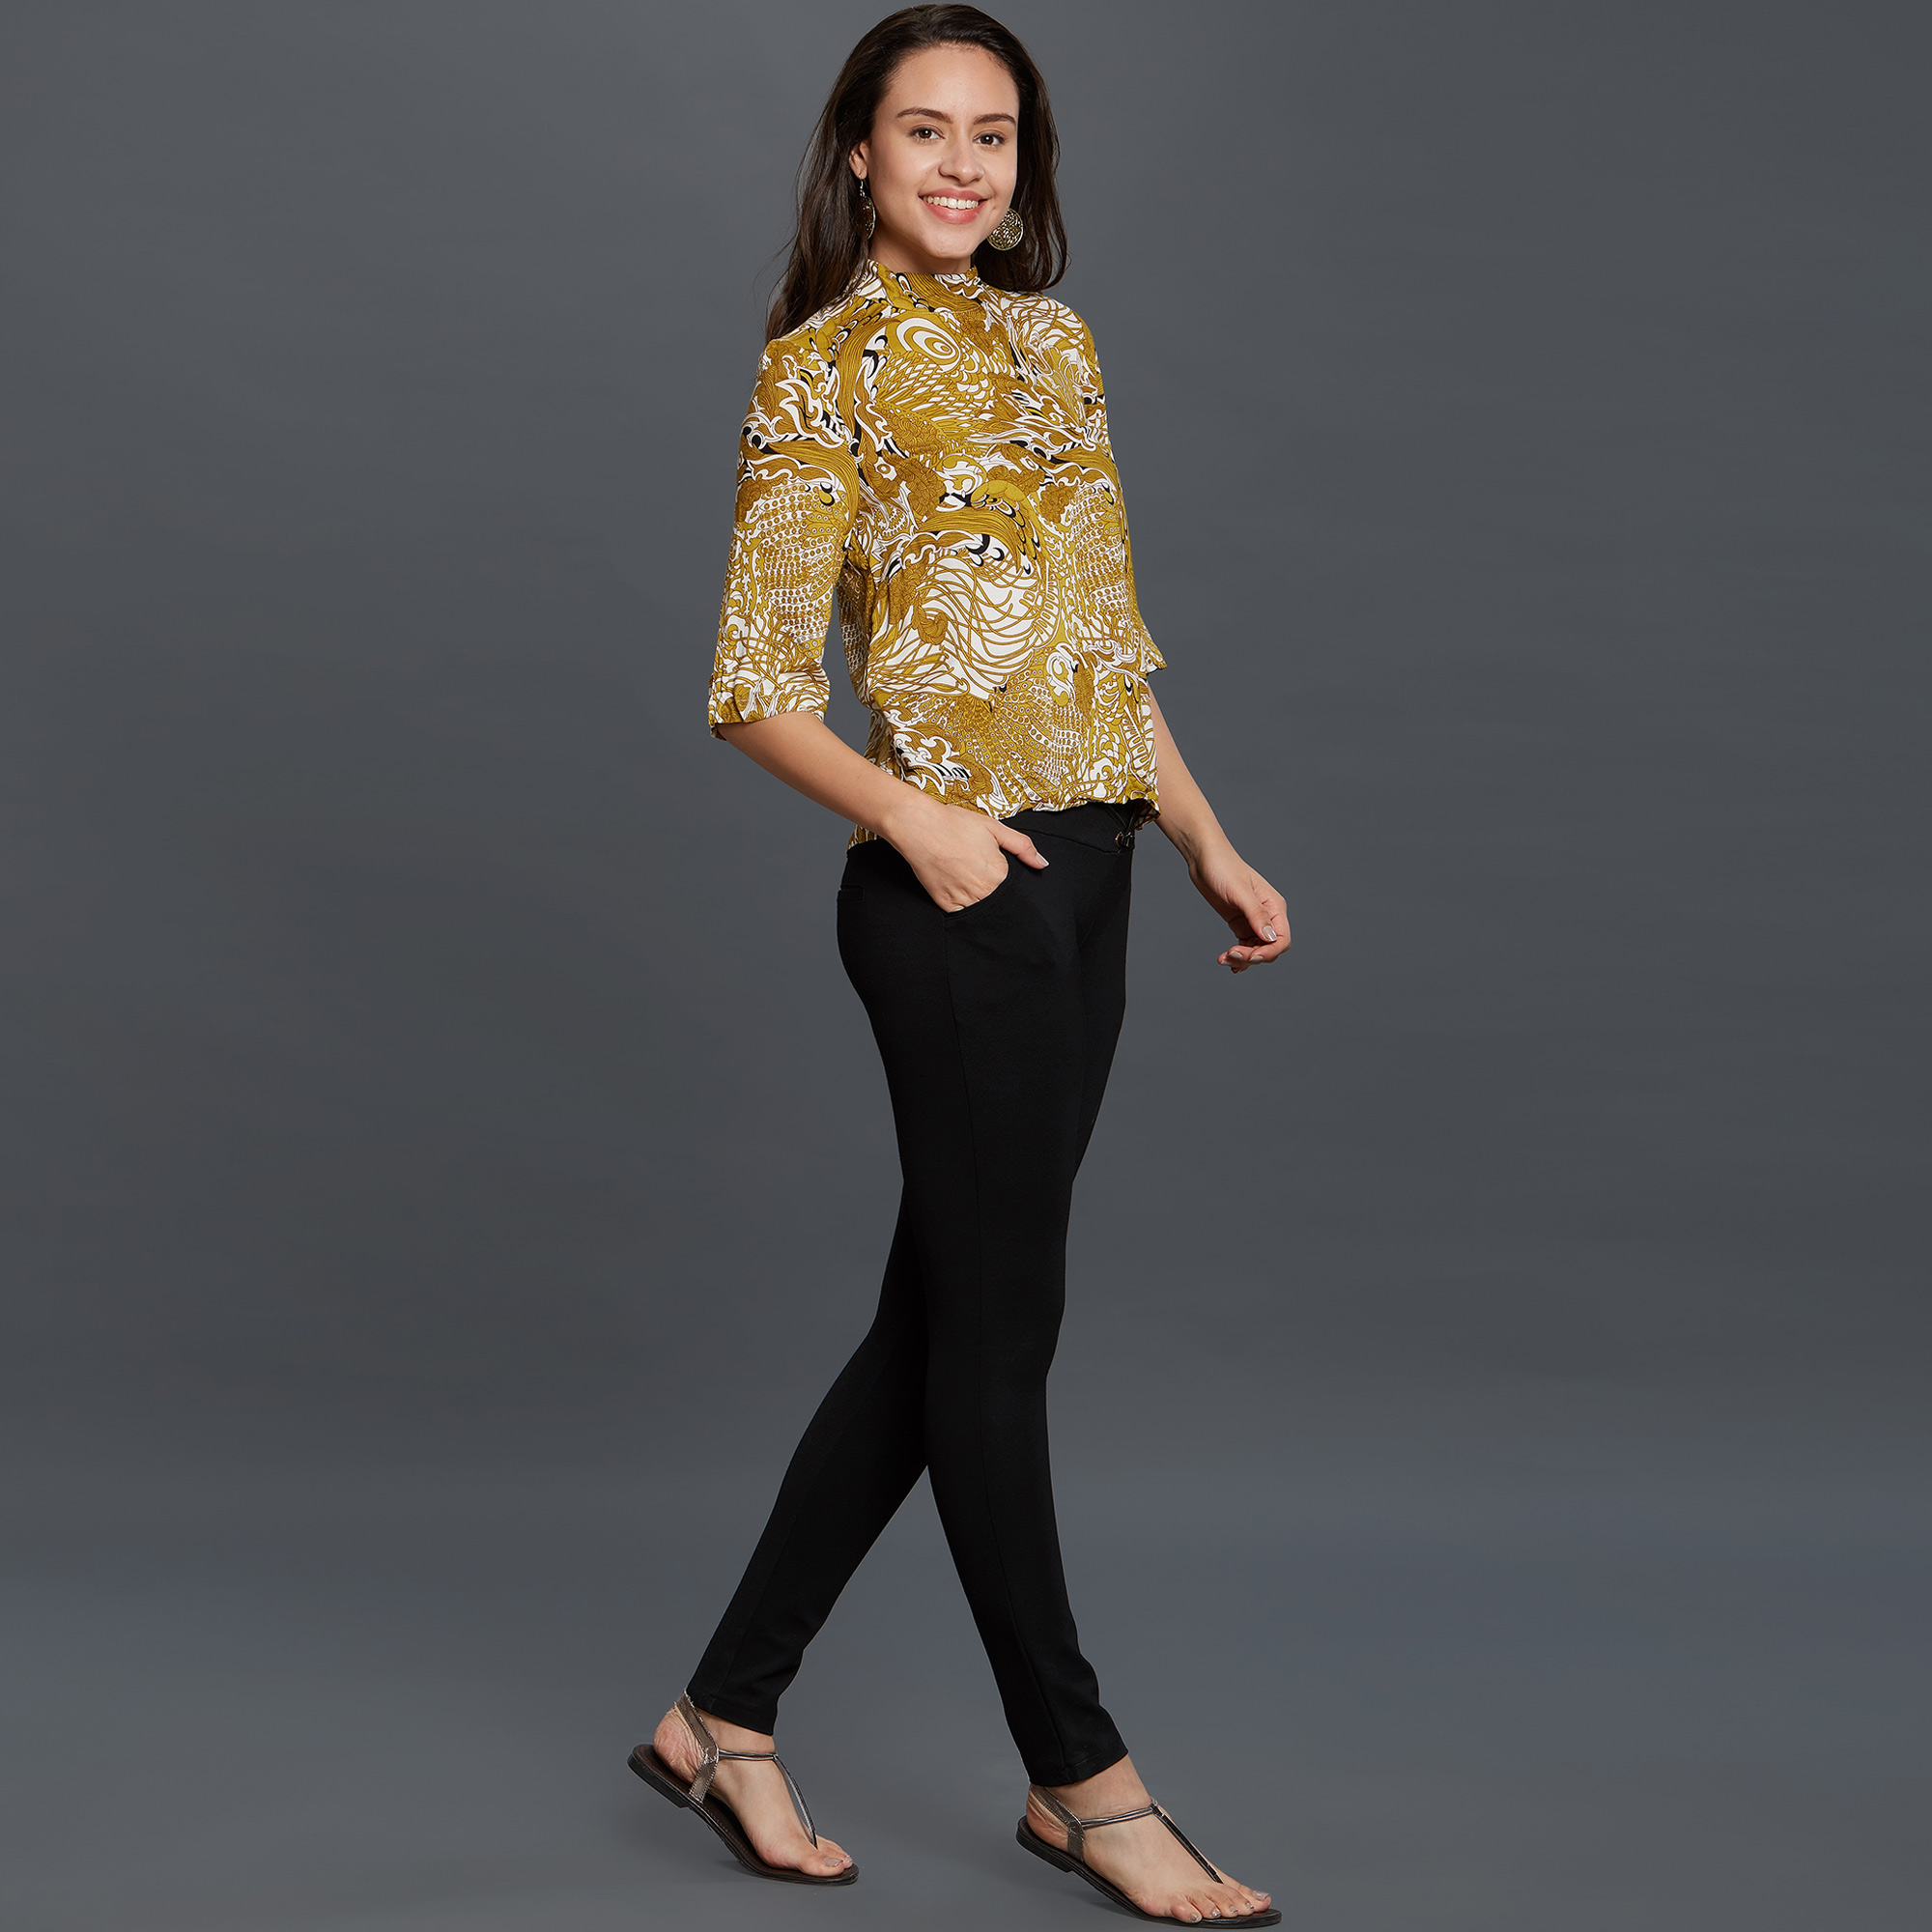 Marvellous Yellow Colored Casual Printed Rayon Top